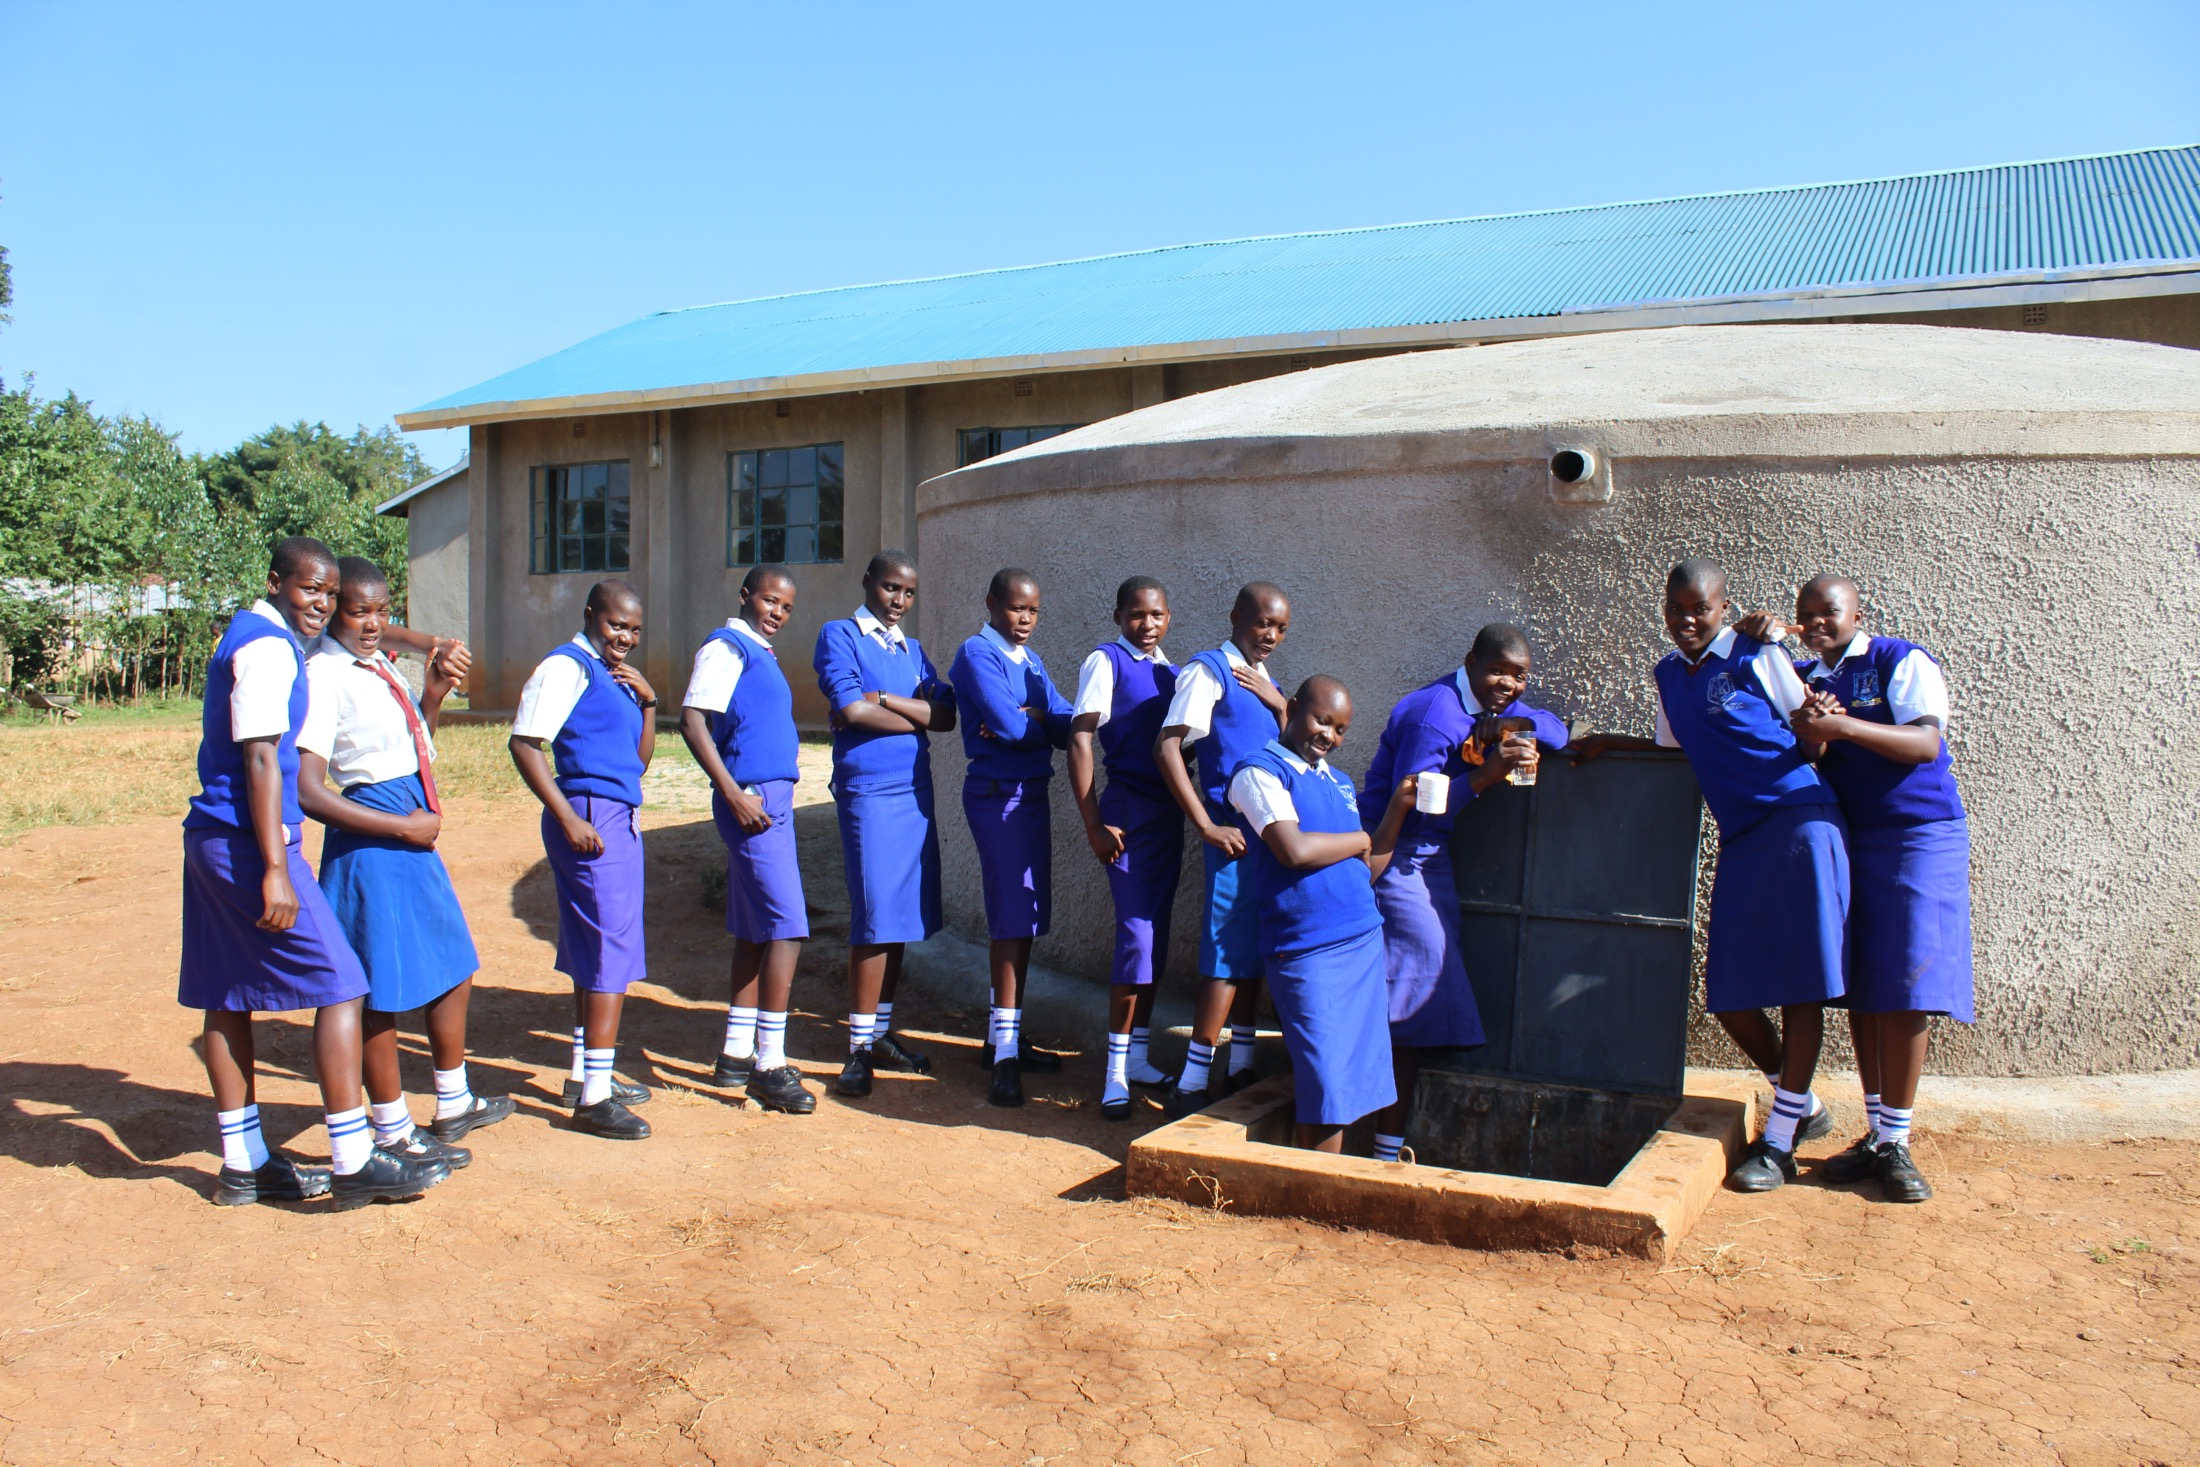 The Water Project : 33-kenya20104-students-posing-at-the-new-rain-tank-2